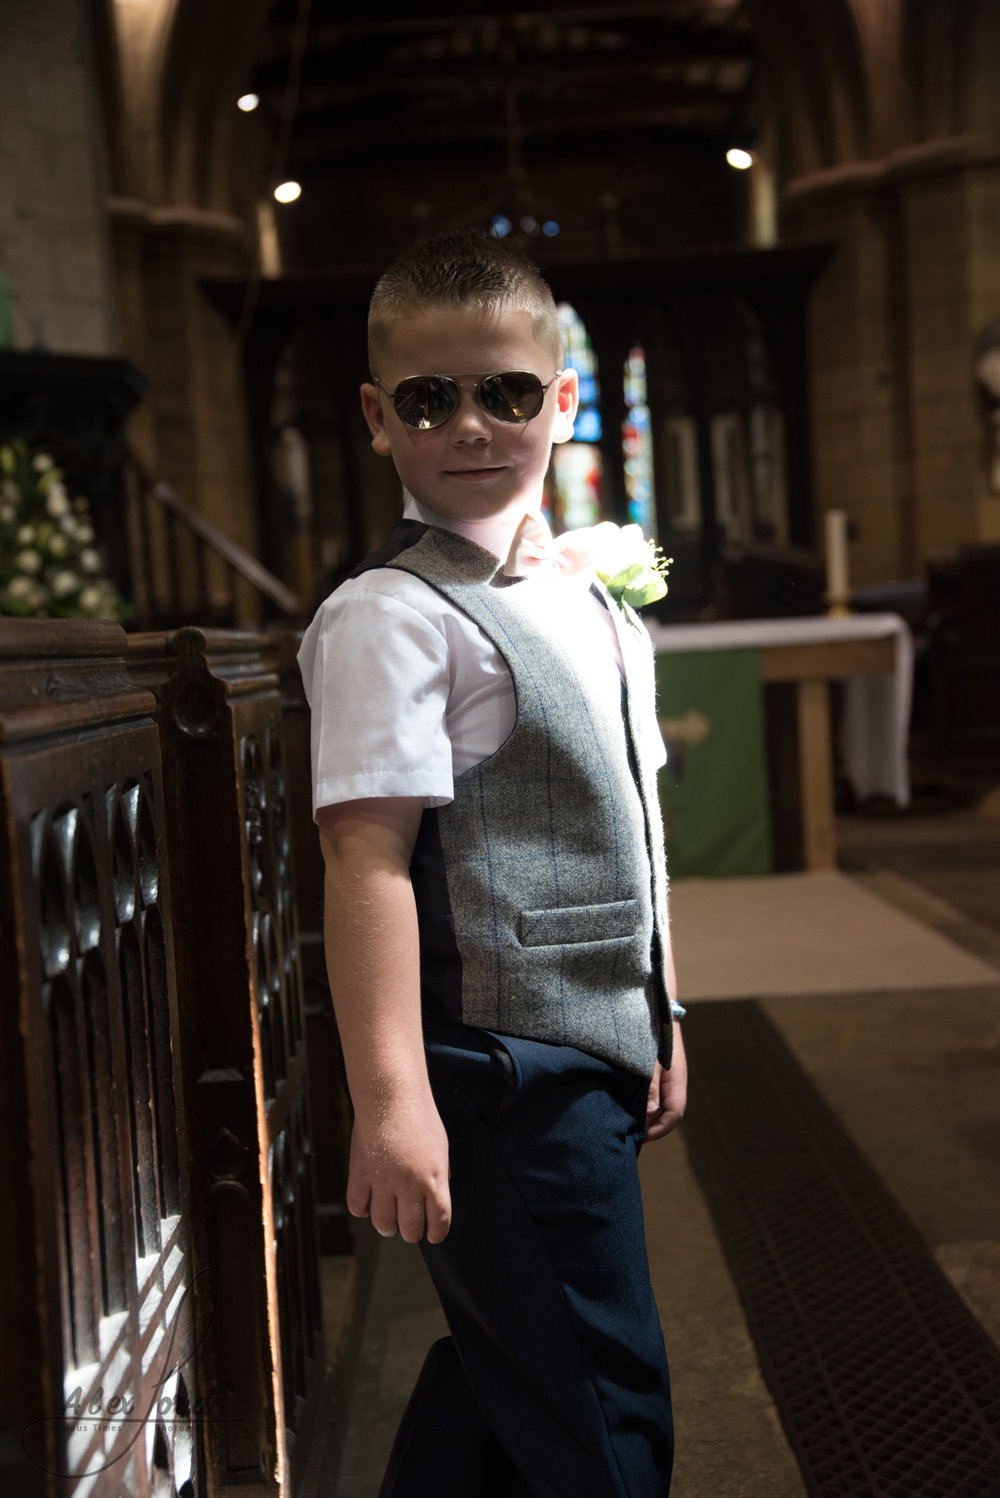 A young usher stands in church and poses for the camera, he's wearing cool sunglasses